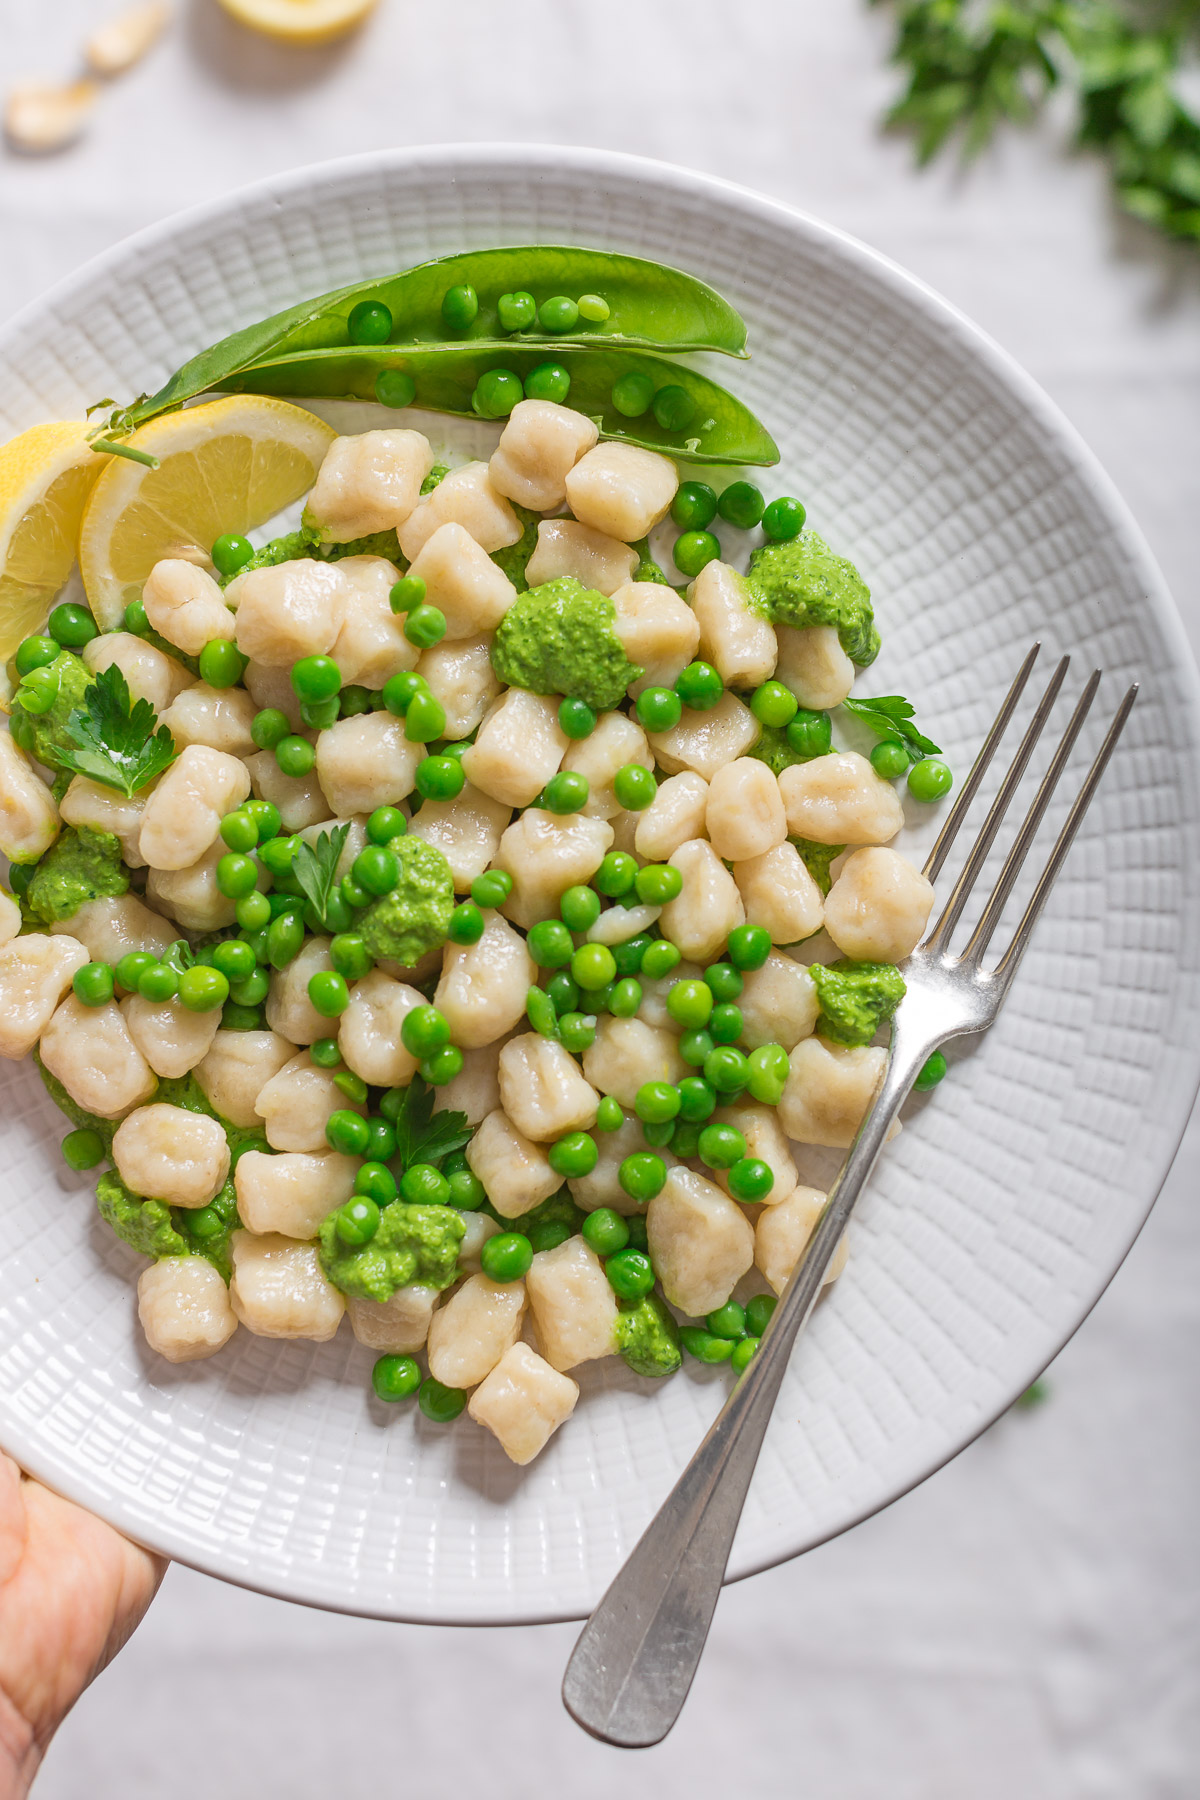 VEGAN LEMON GNOCCHI recipe with PEA PESTO #vegan #glutenfree or with whole spelt flour - GNOCCHI AL LIMONE SENZA UOVA con PESTO DI PISELLI ricetta vegan senza glutine o con farina di farro integrale